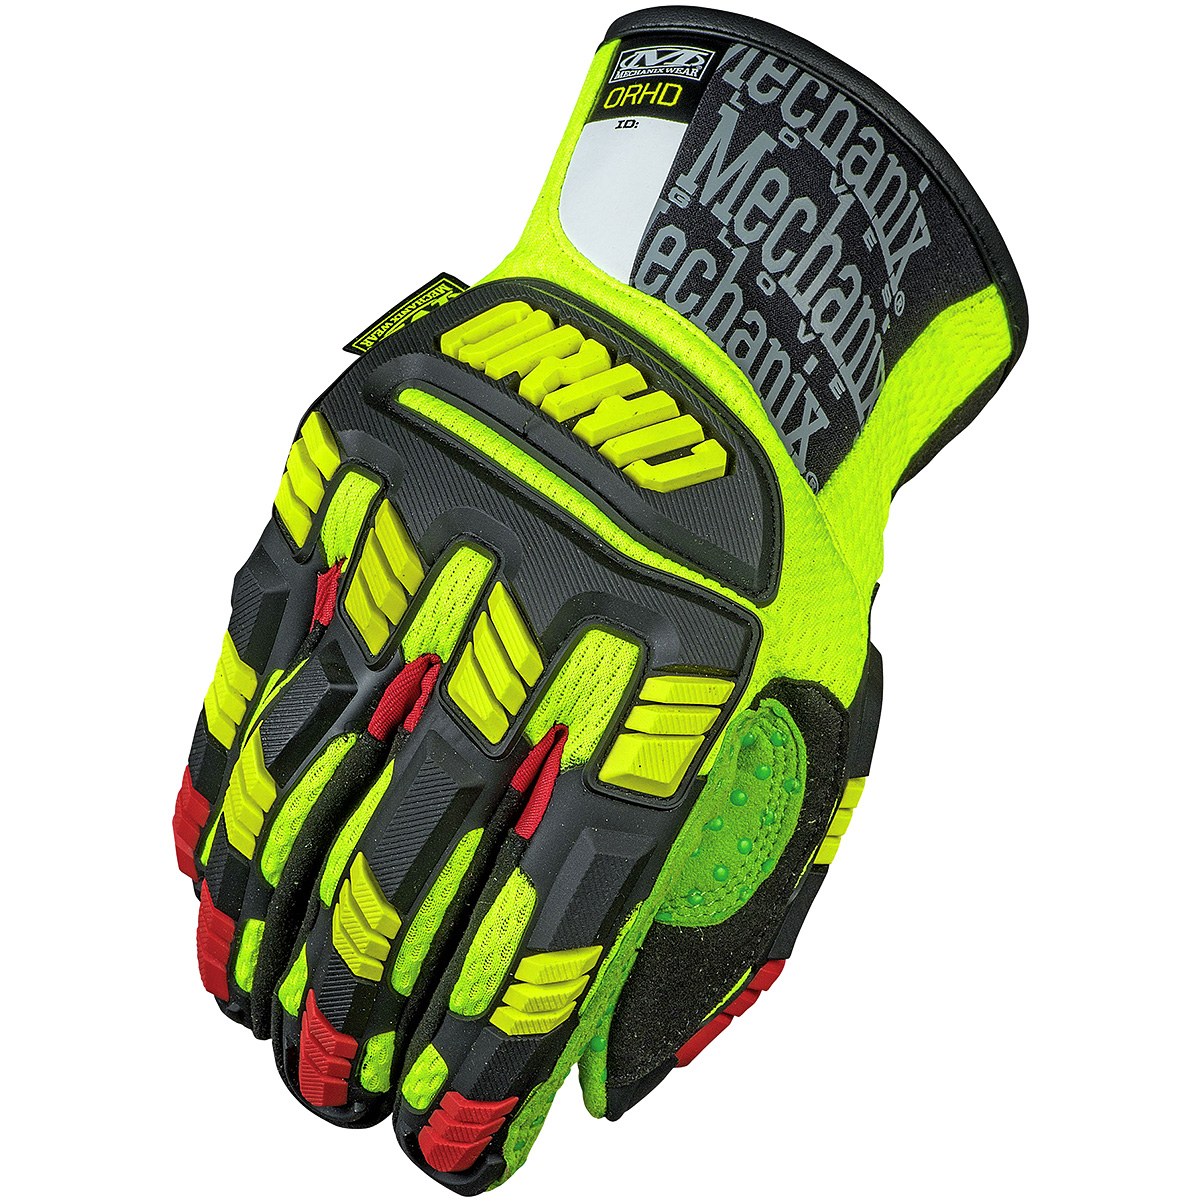 Leather work gloves m pact 2 - Mechanix Wear The Safety M Pact Orhd Padded